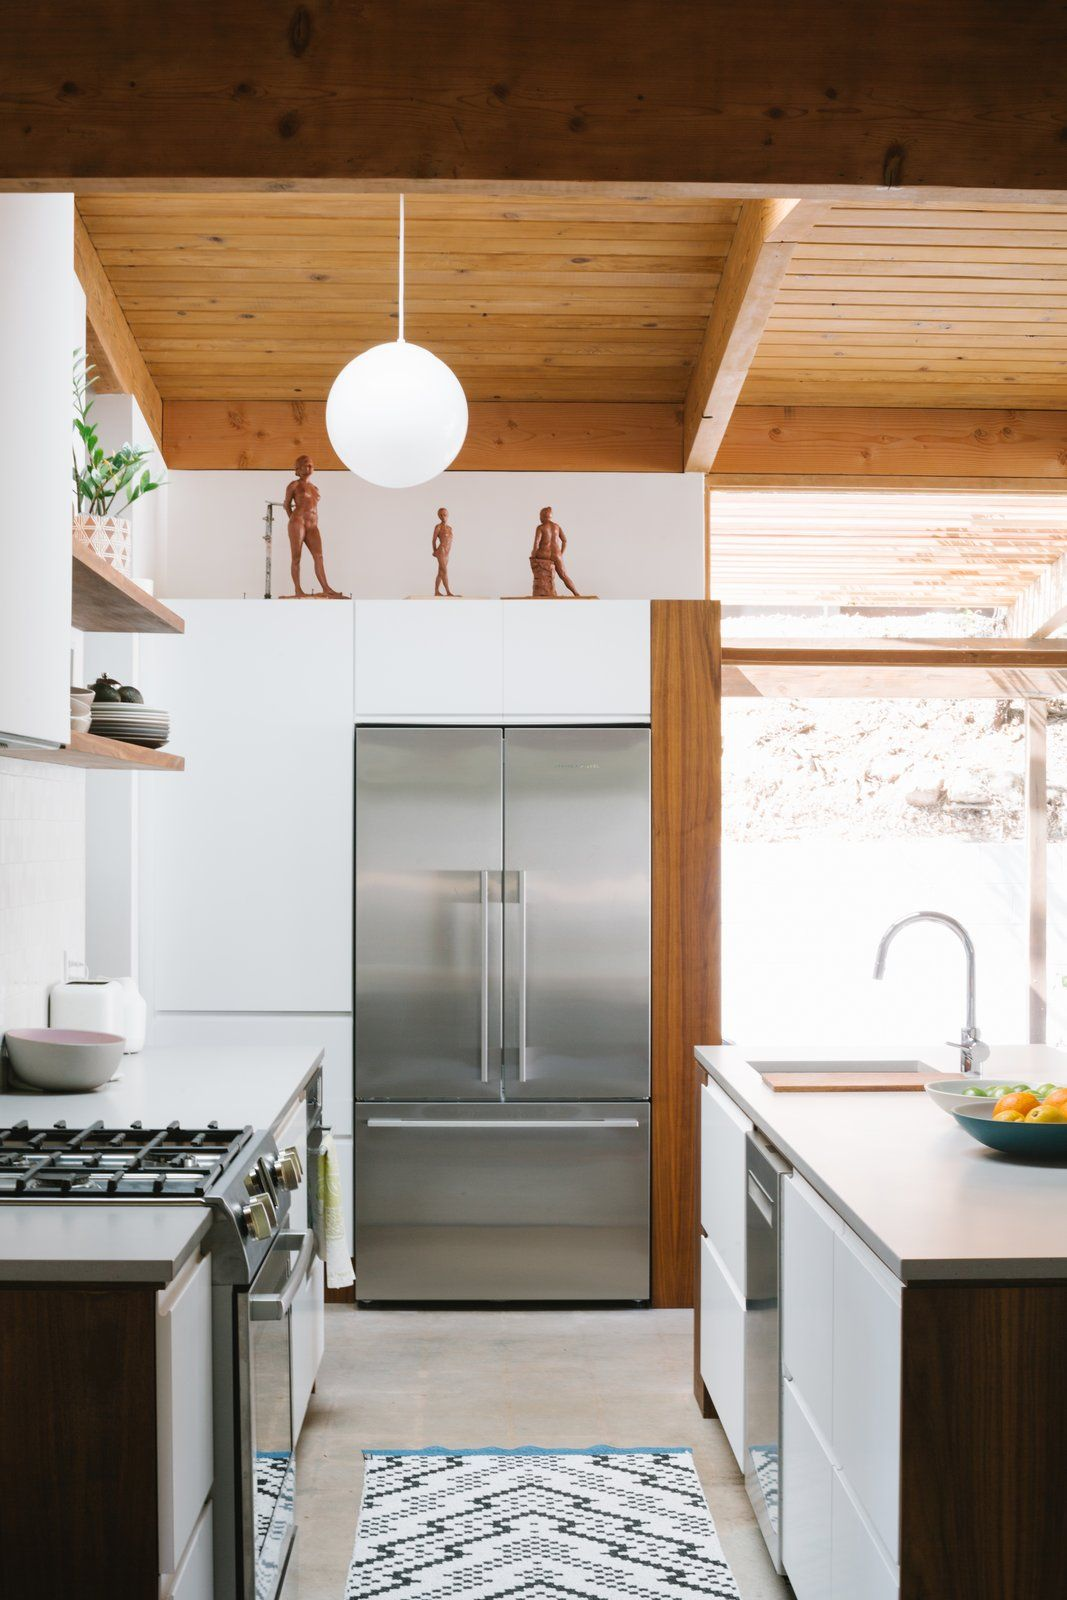 25 Mid Century Modern Kitchen Ideas To Beautify Your Cooking Area - F2A5757Daaa419Bcfcca9033Cc959133